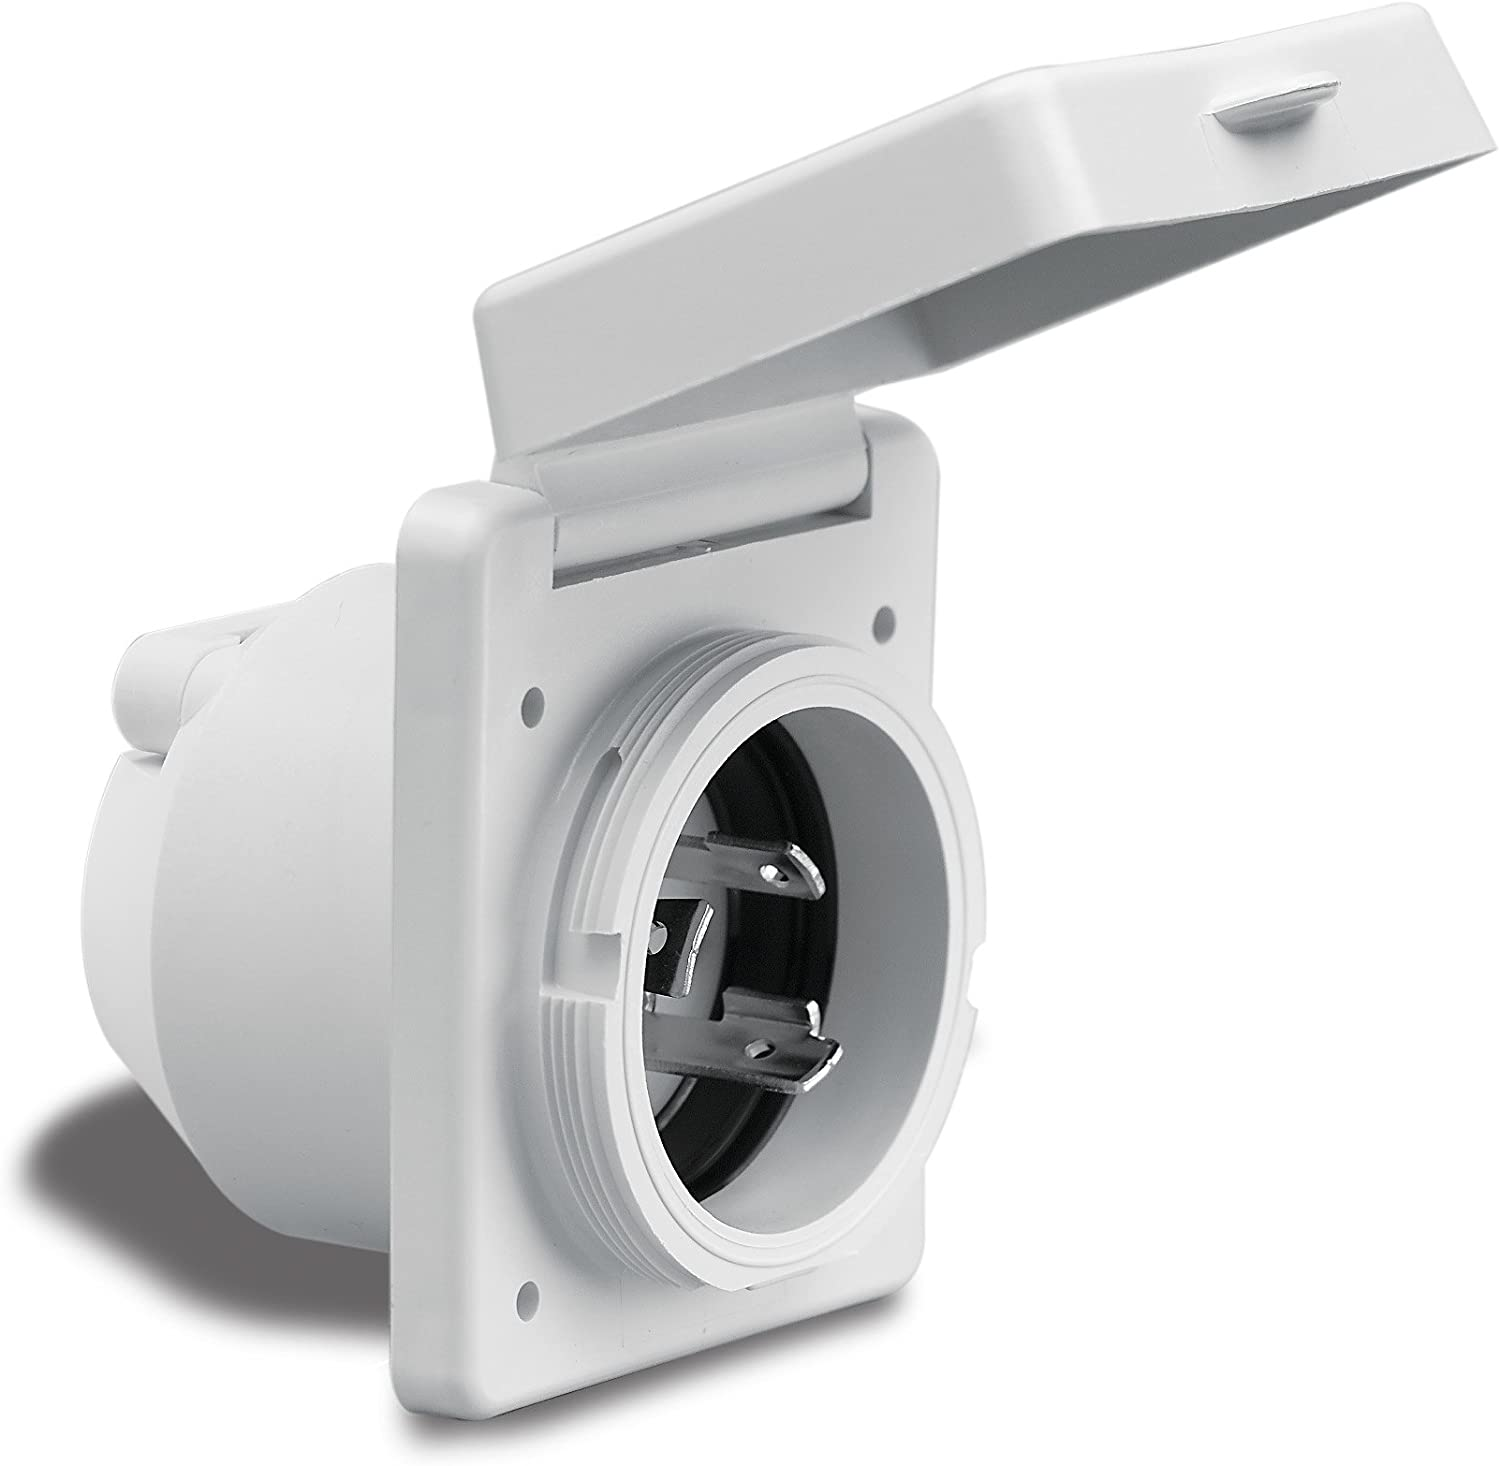 MARINCO Male Socket with Rear Predection for Valox Resin Cables